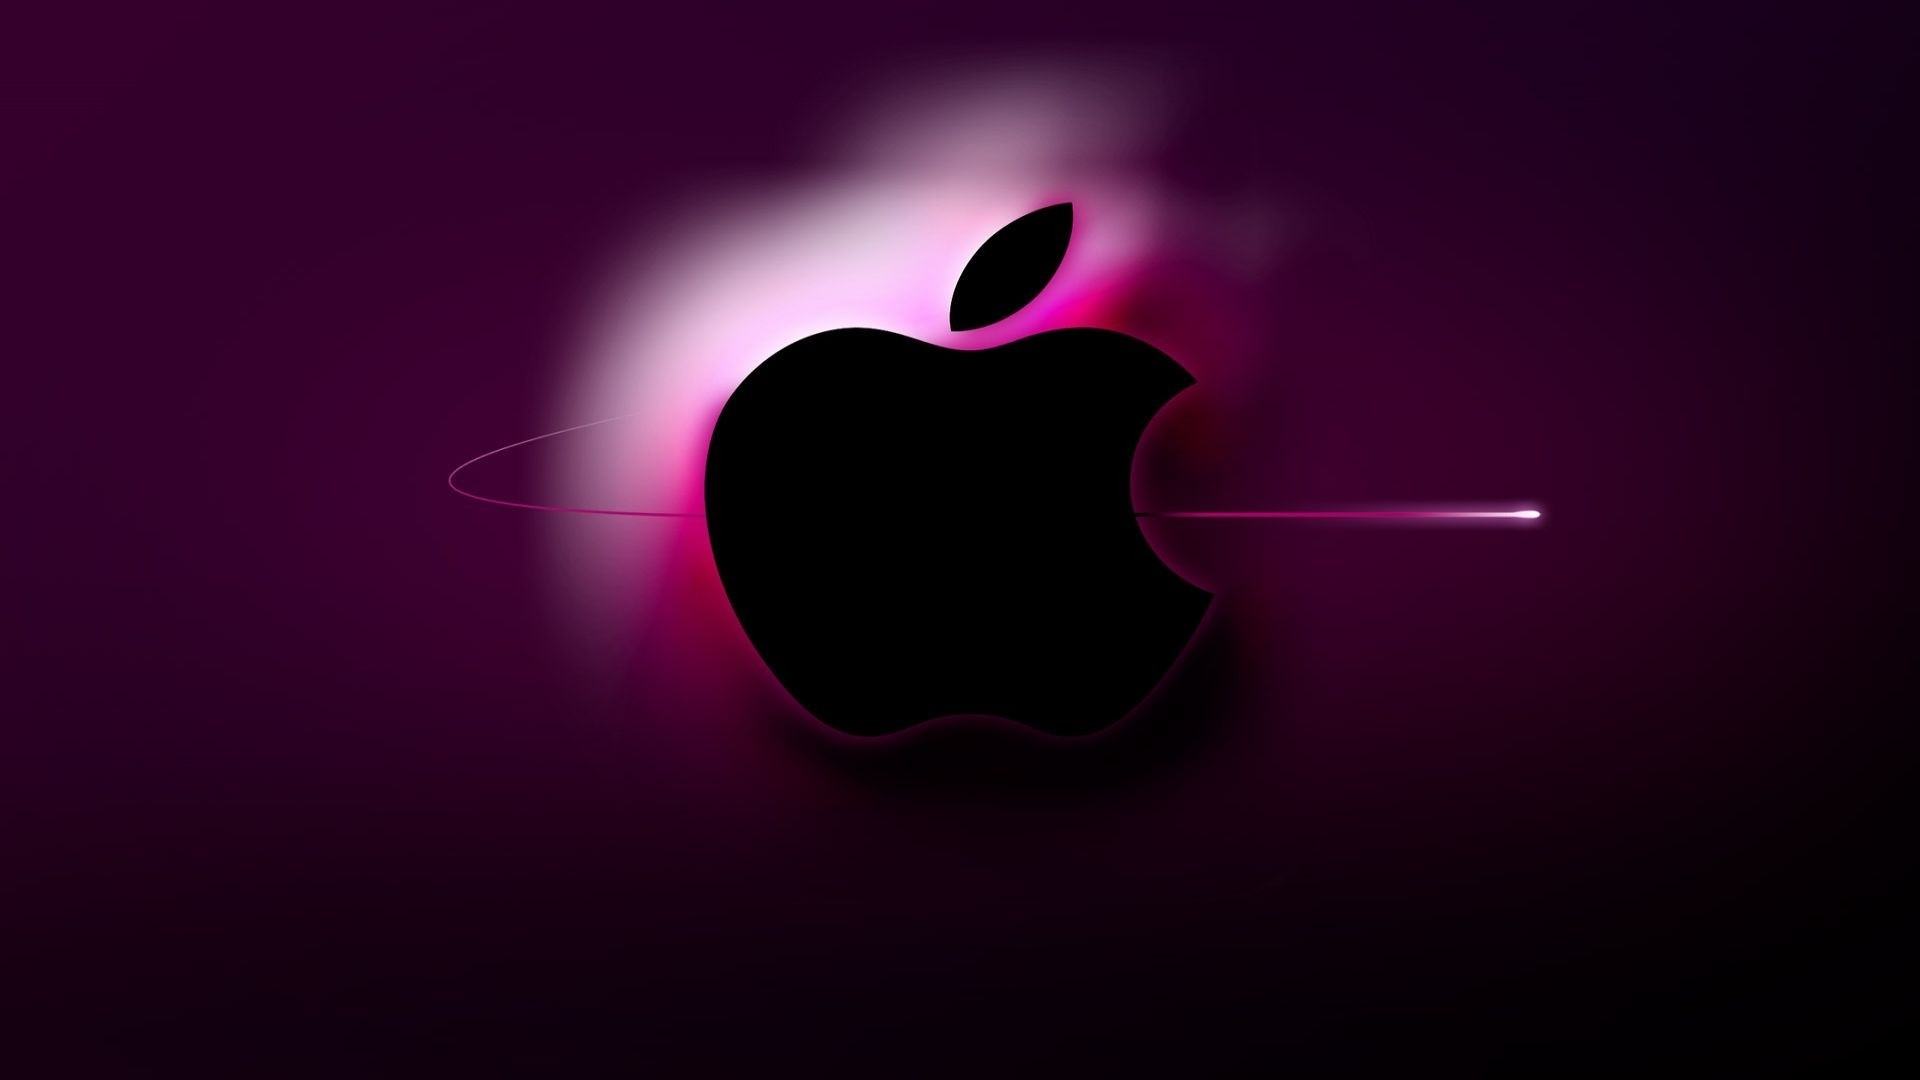 Apple Logo Hd Wallpapers For Iphone 1920 1080 Apple Logo: HD Apple Wallpapers 1080p (70+ Images